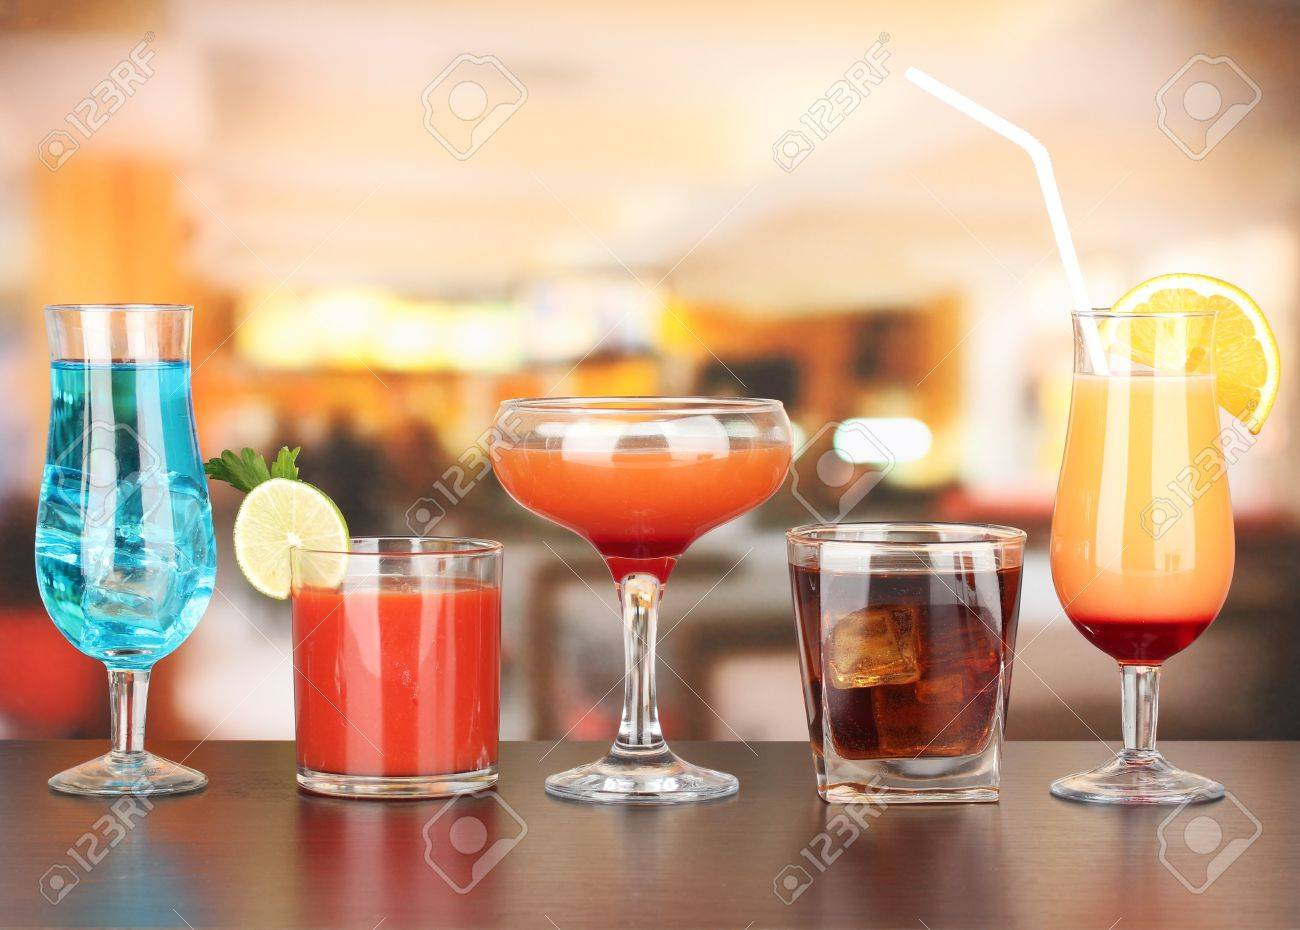 Several glasses of different drinks on bright background Stock Photo - 17116935